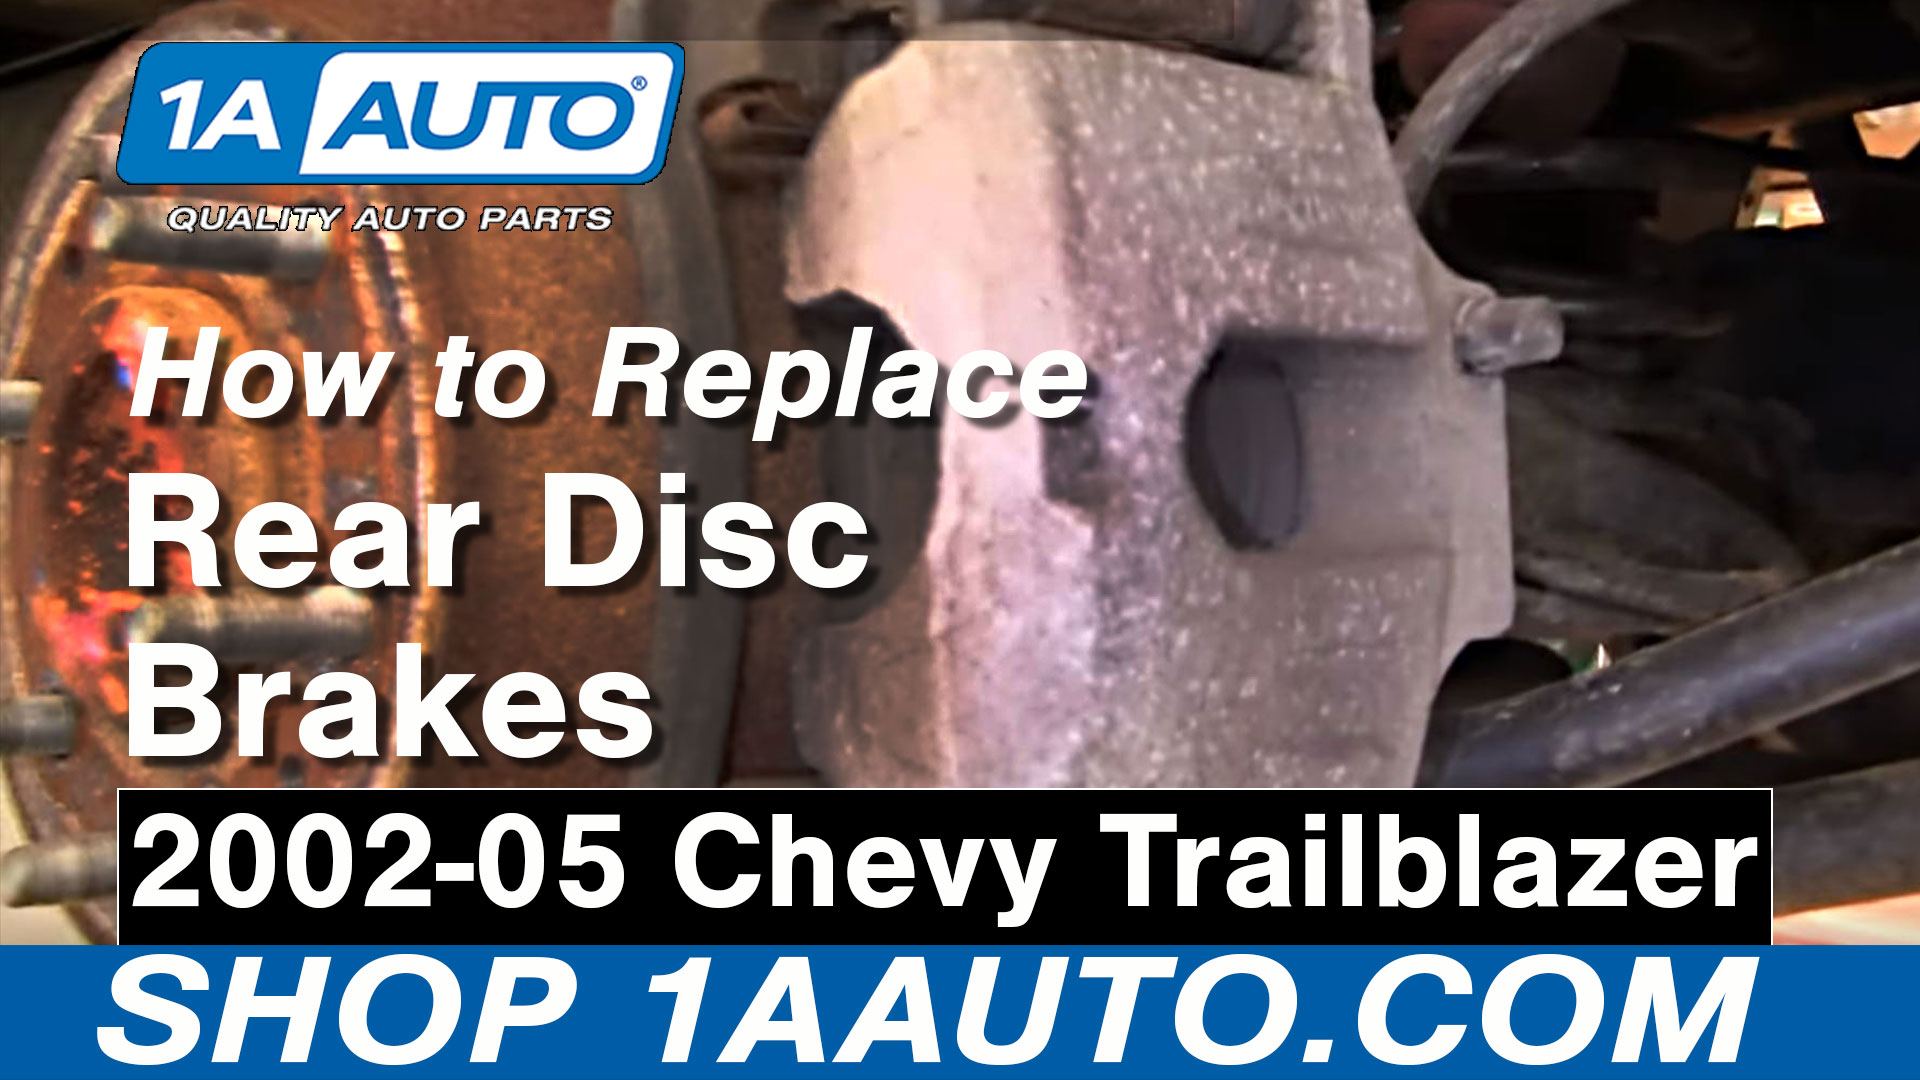 How to Replace Rear Brakes 02-05 Chevy Trailblazer